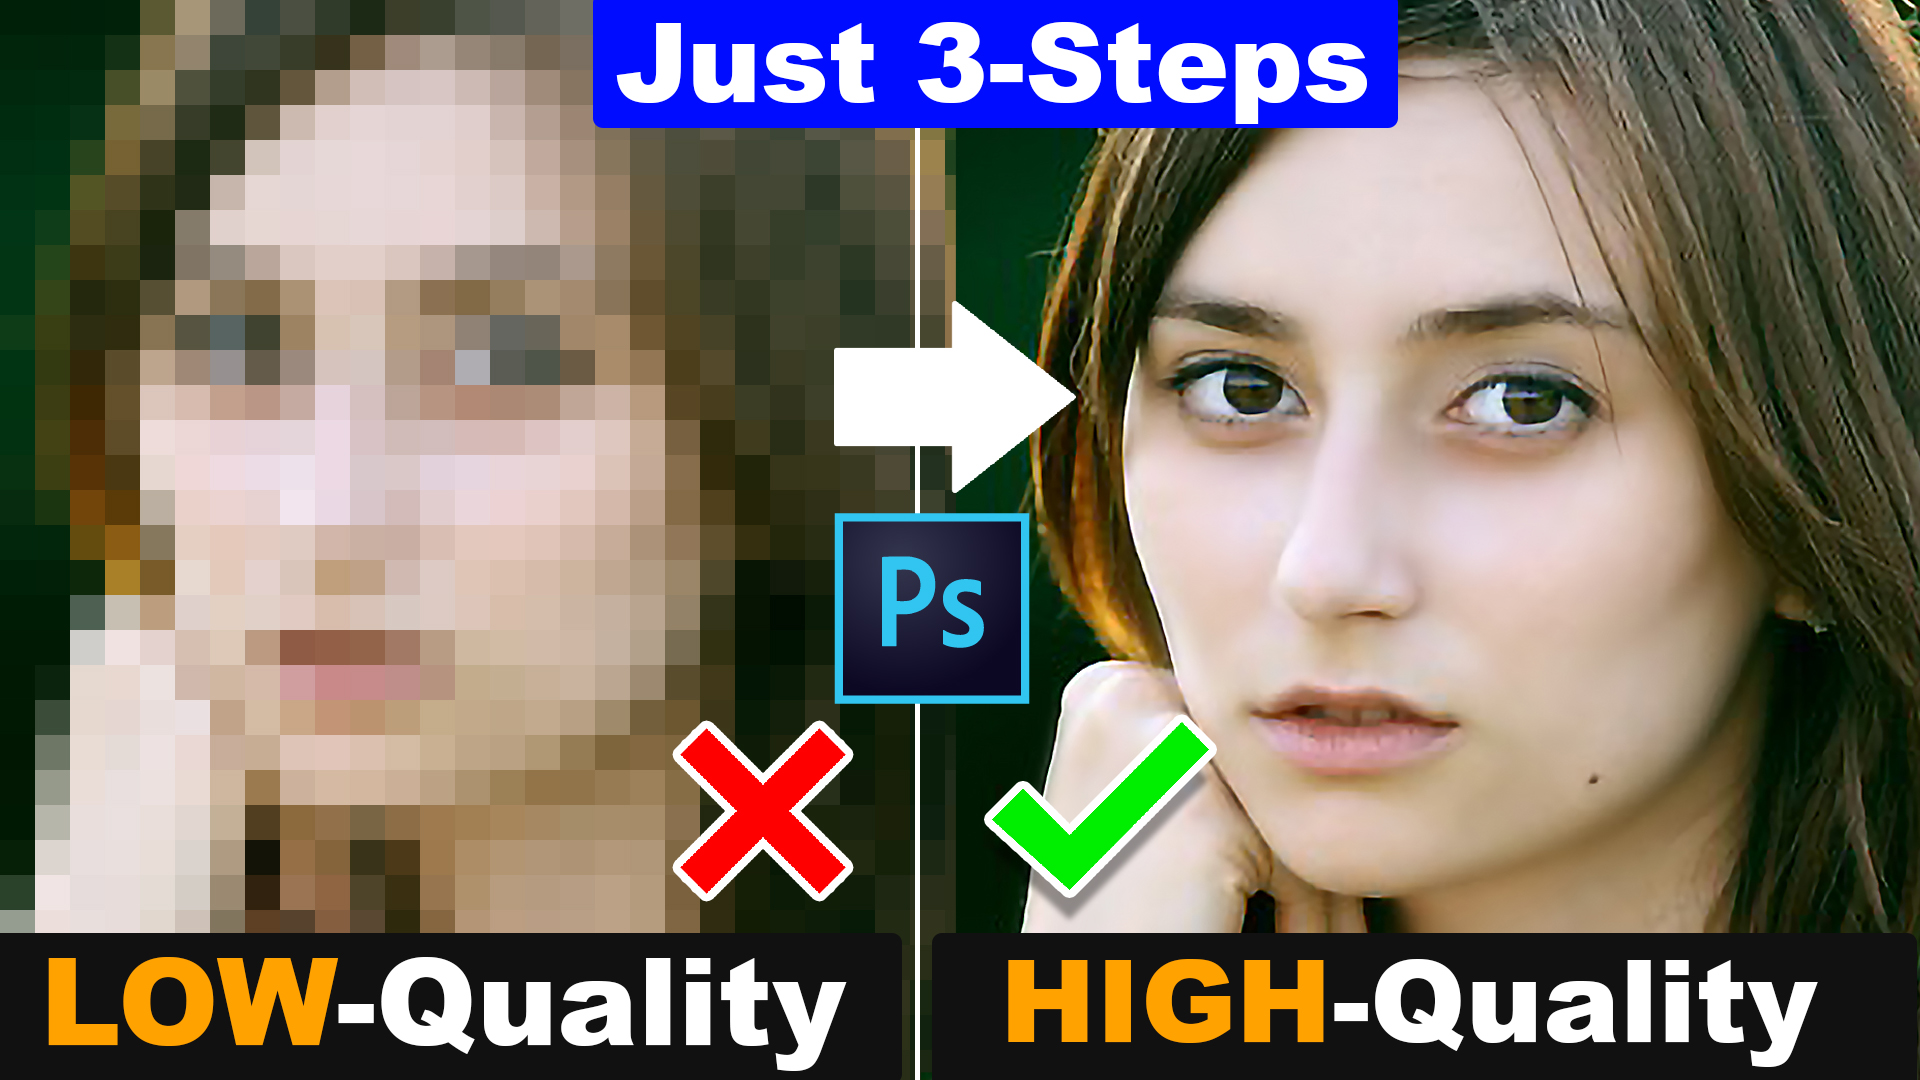 Convert Low-Quality Image into High-Quality